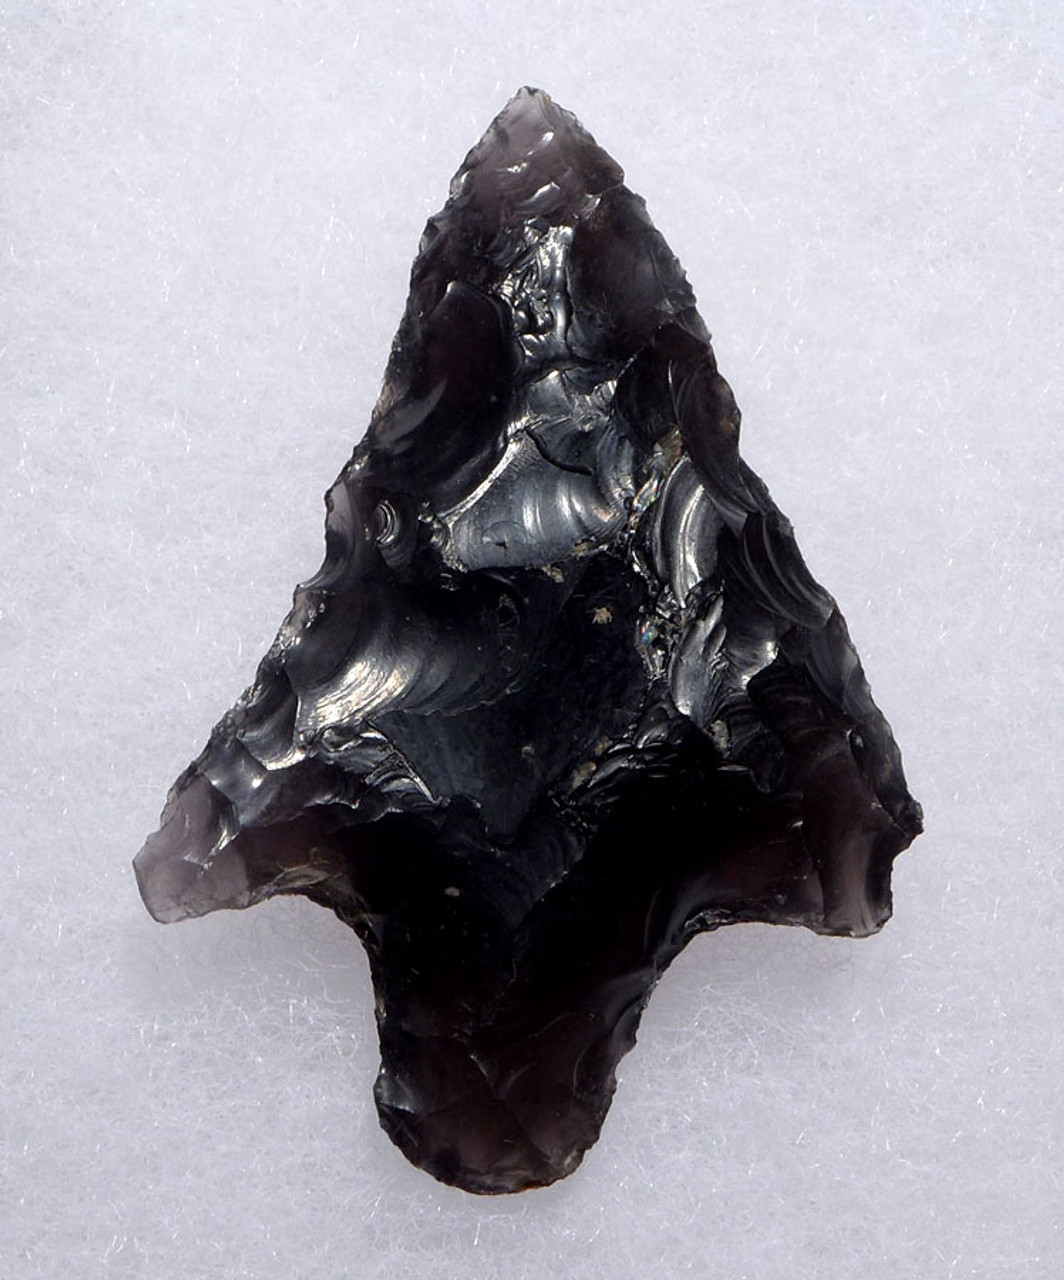 LARGE BARBED PRE-COLUMBIAN BIFACIAL OBSIDIAN ATLATL SPEARPOINT FROM THE HEFLIN COLLECTION * PC264